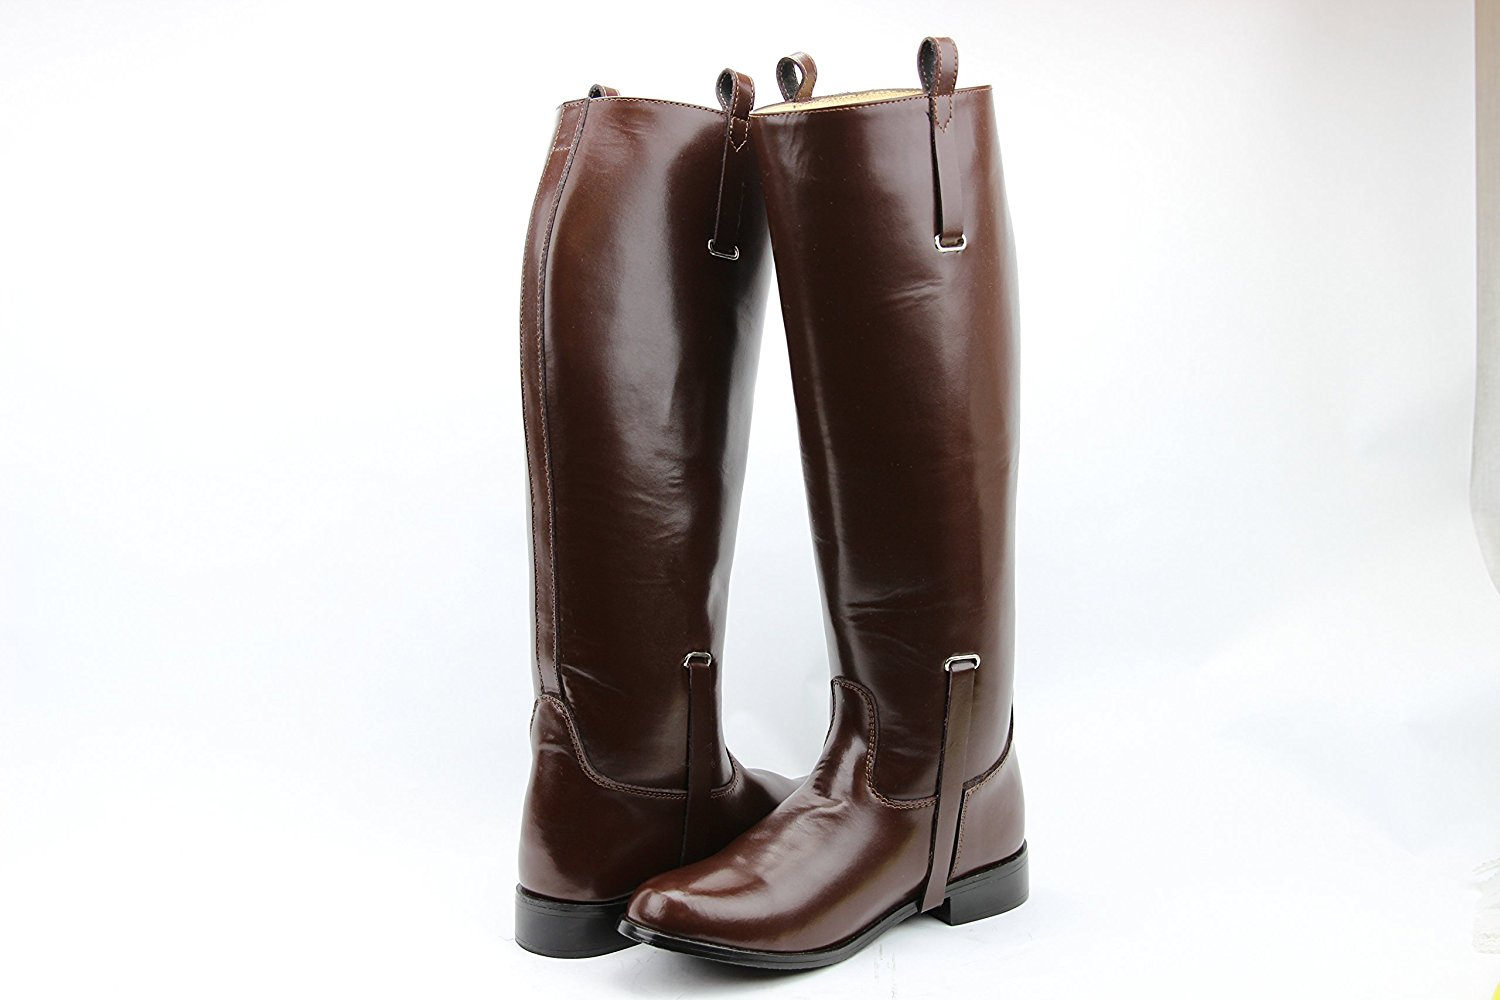 To acquire Stylish ladies riding boots pictures trends